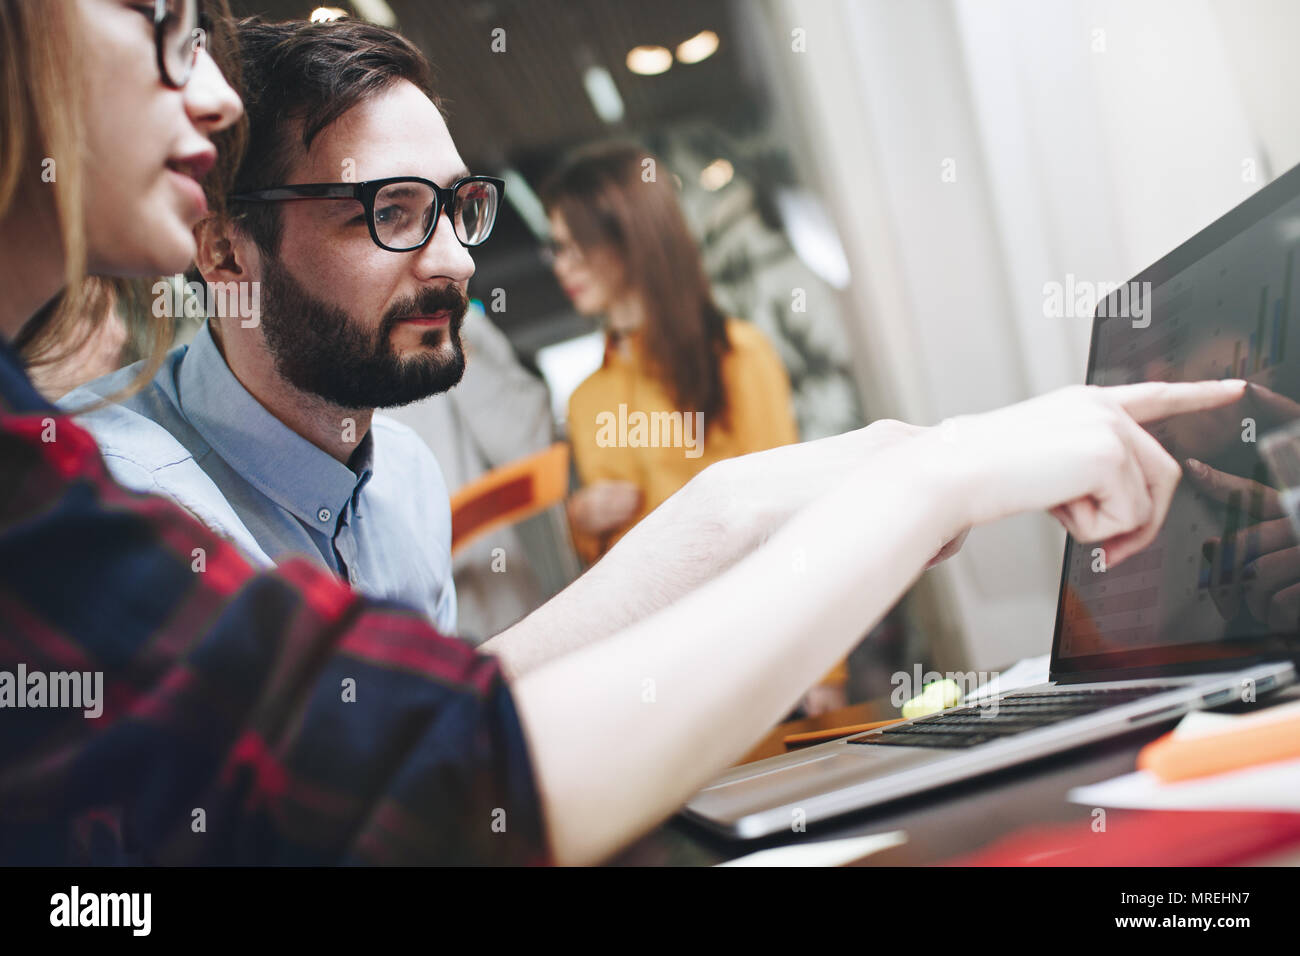 Bearded man and woman discussing marketing plan. Product meeting. Startup in open space office - Stock Image